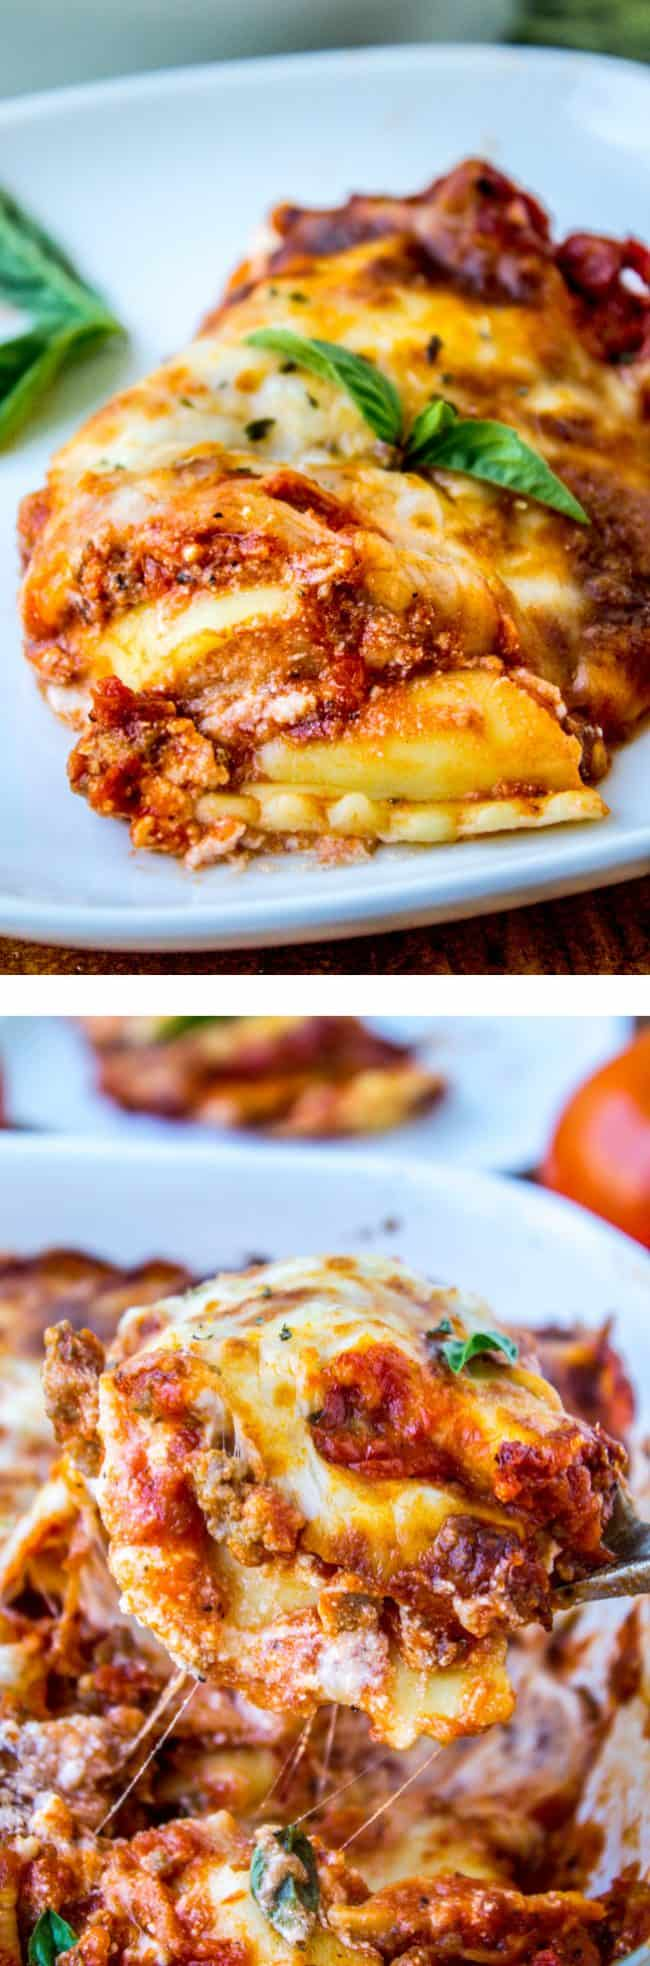 Easy Ravioli Lasagna from The Food Charlatan